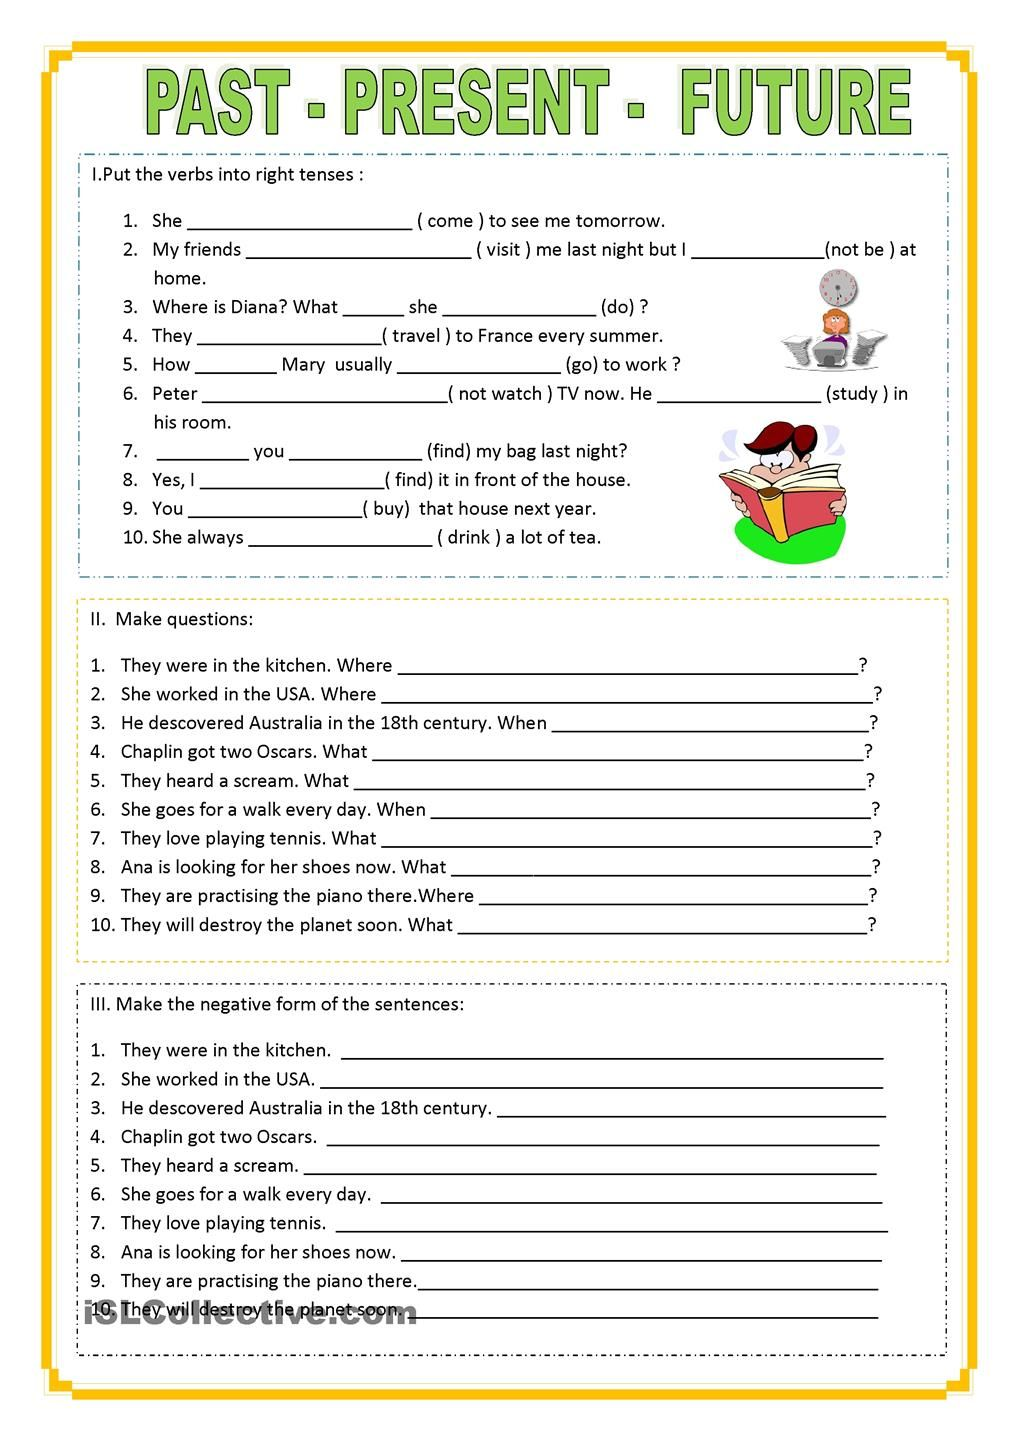 Workbooks writing grammar worksheets : Past_Present_Future | English learning | Pinterest | Future ...